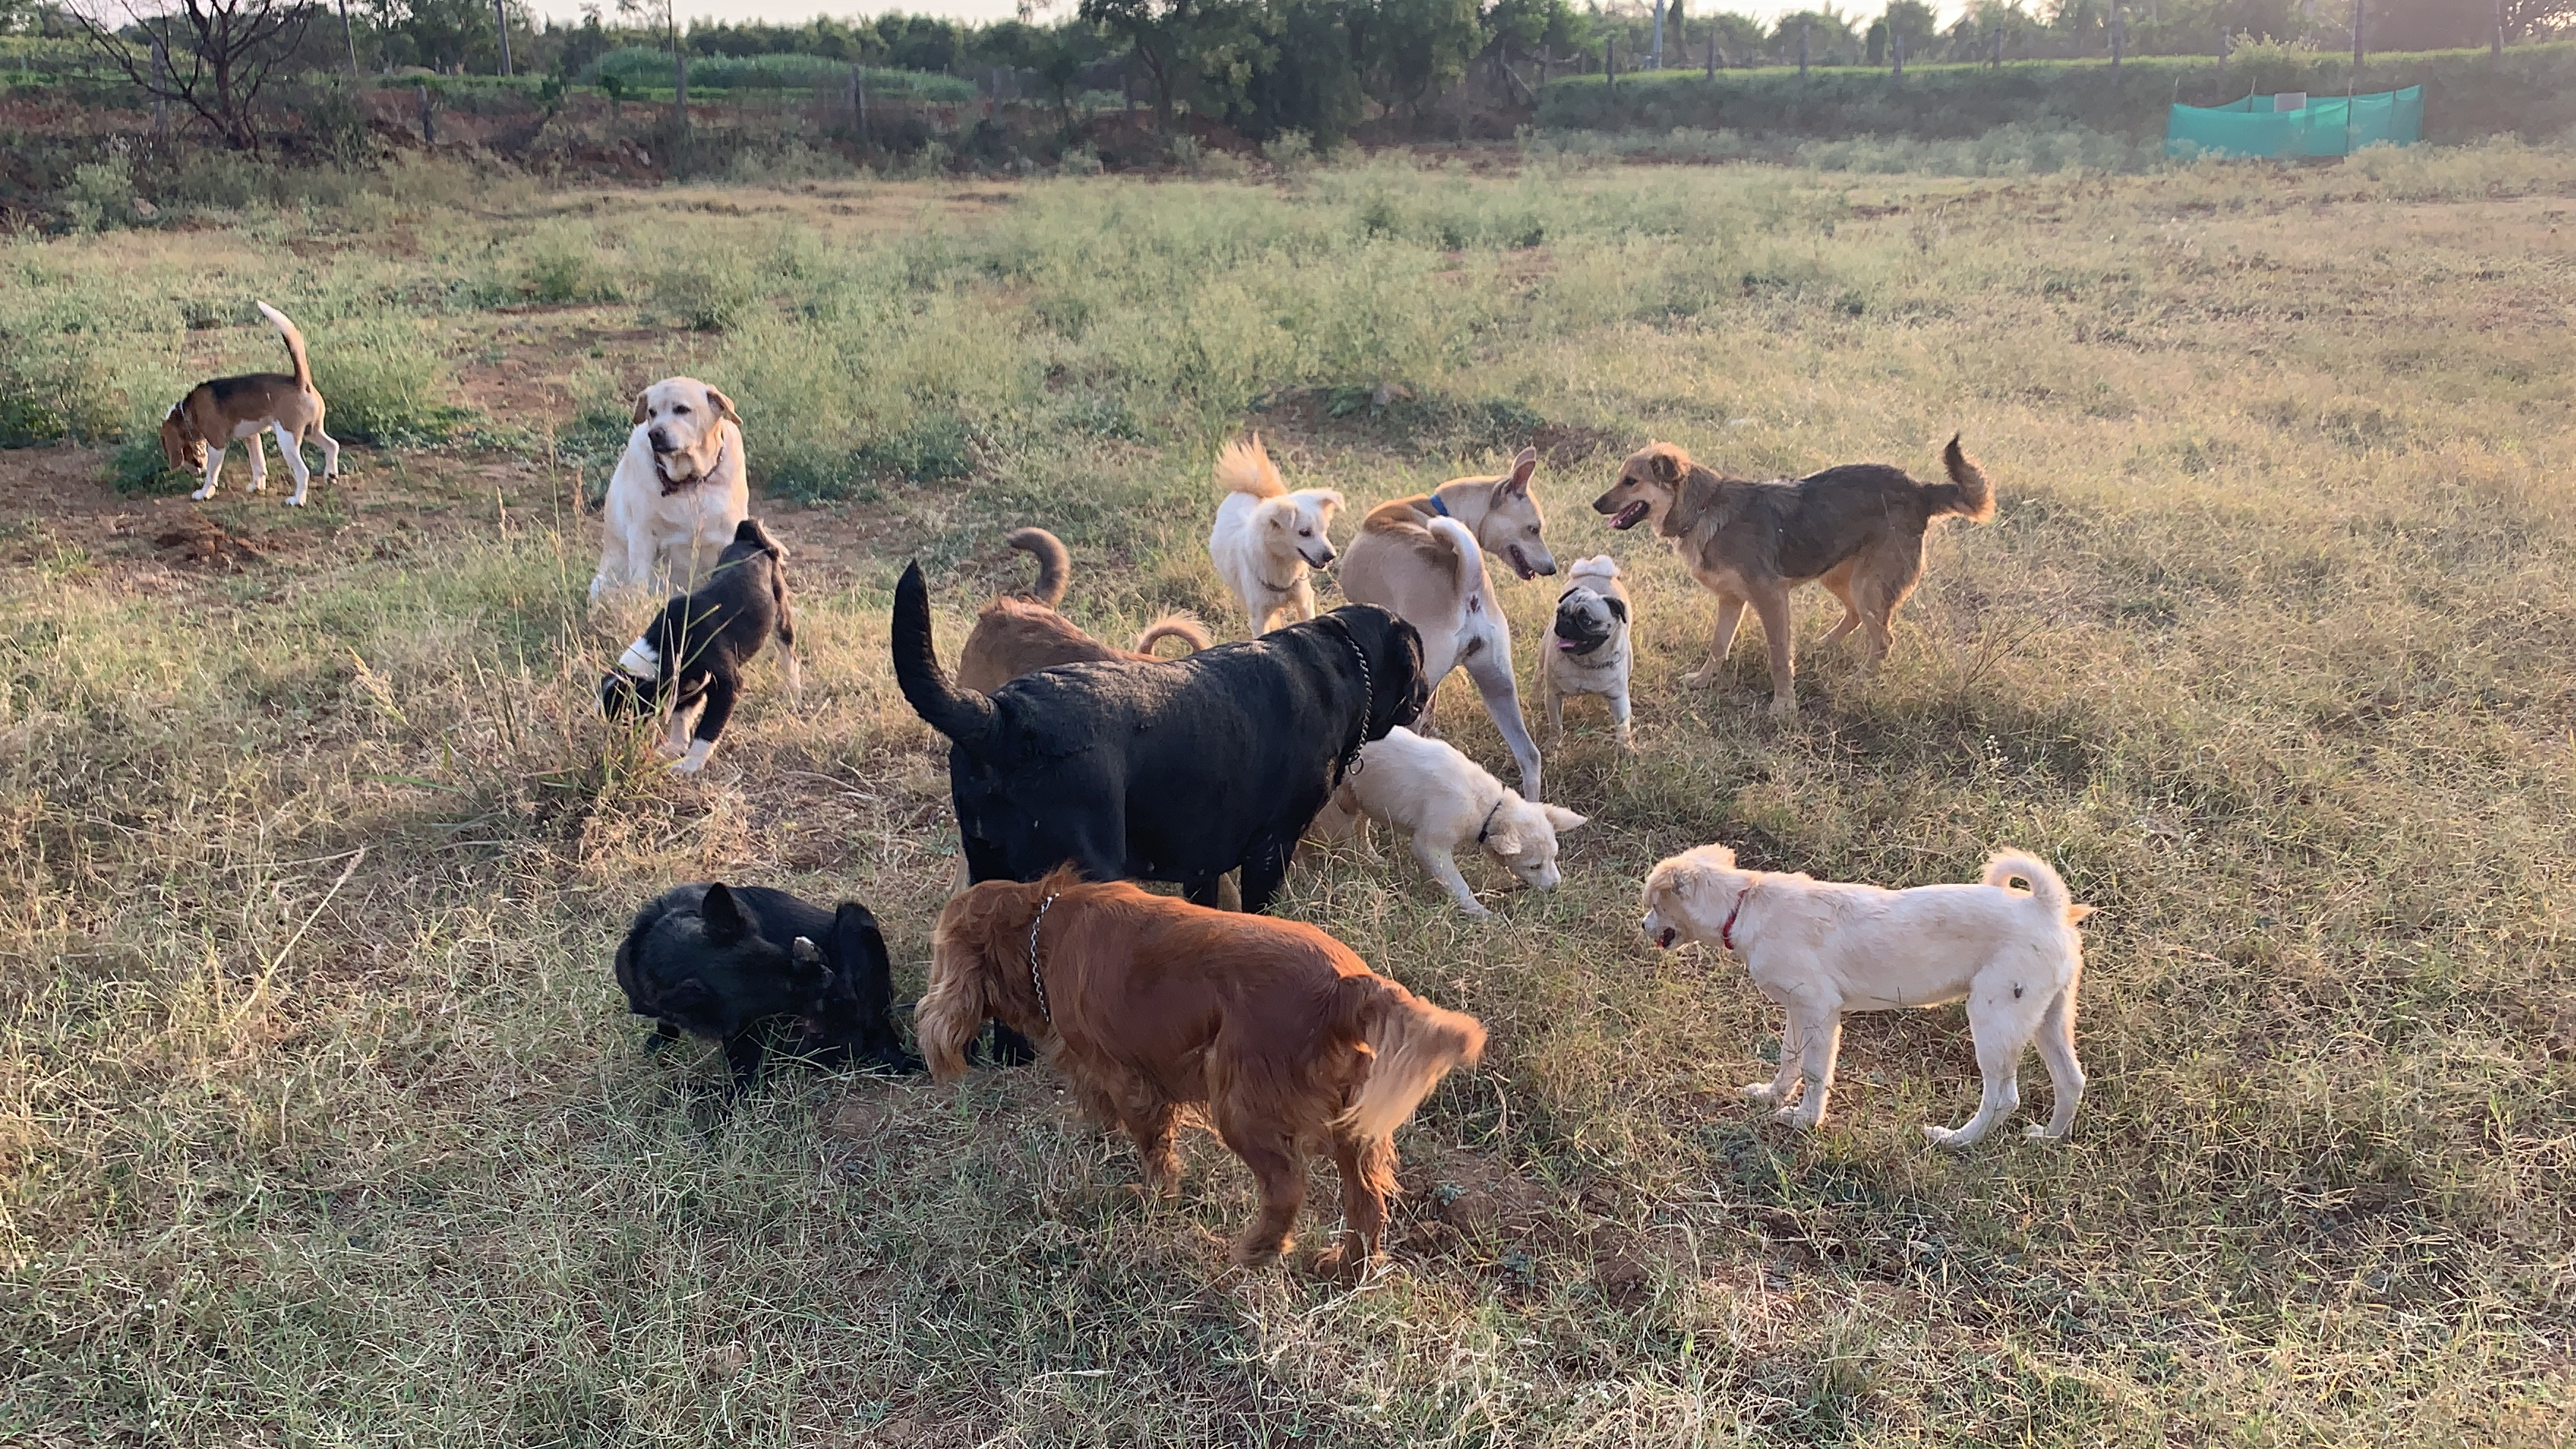 dog boarding Services in hyderabad, pet boarding Services in hyderabad